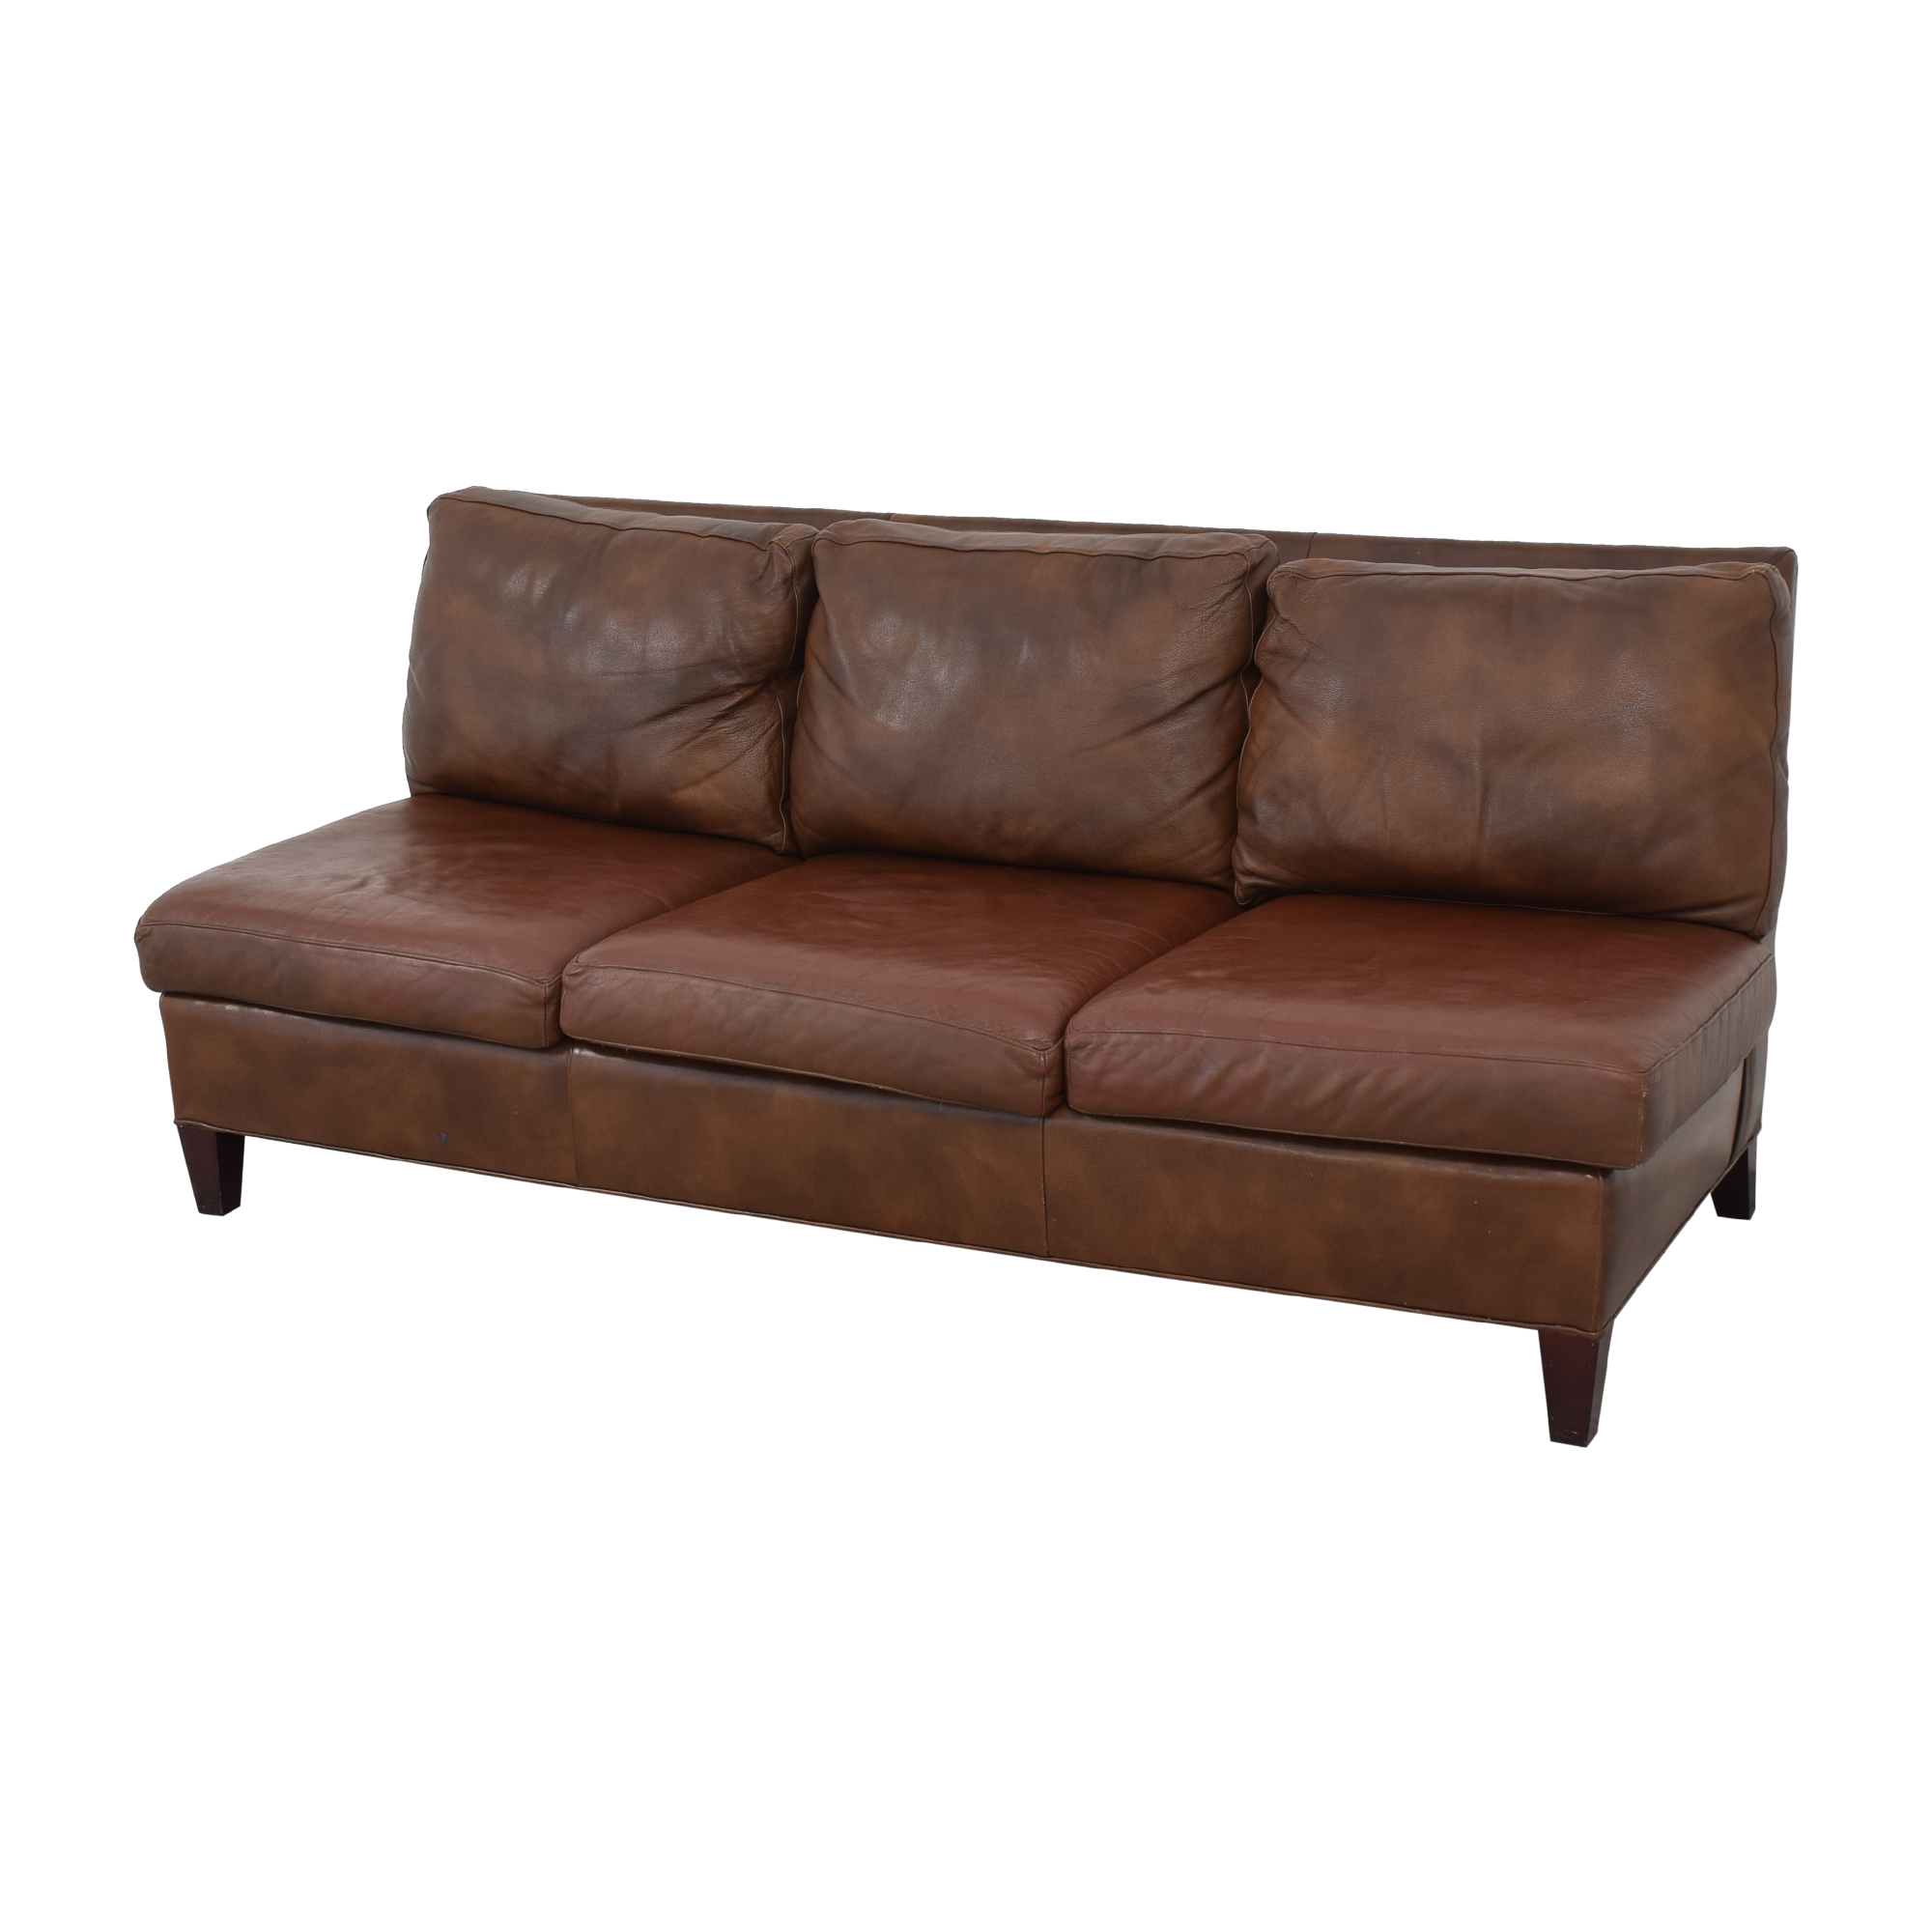 shop McKinley Leather Furniture McKinley Leather Furniture Armless Sofa online